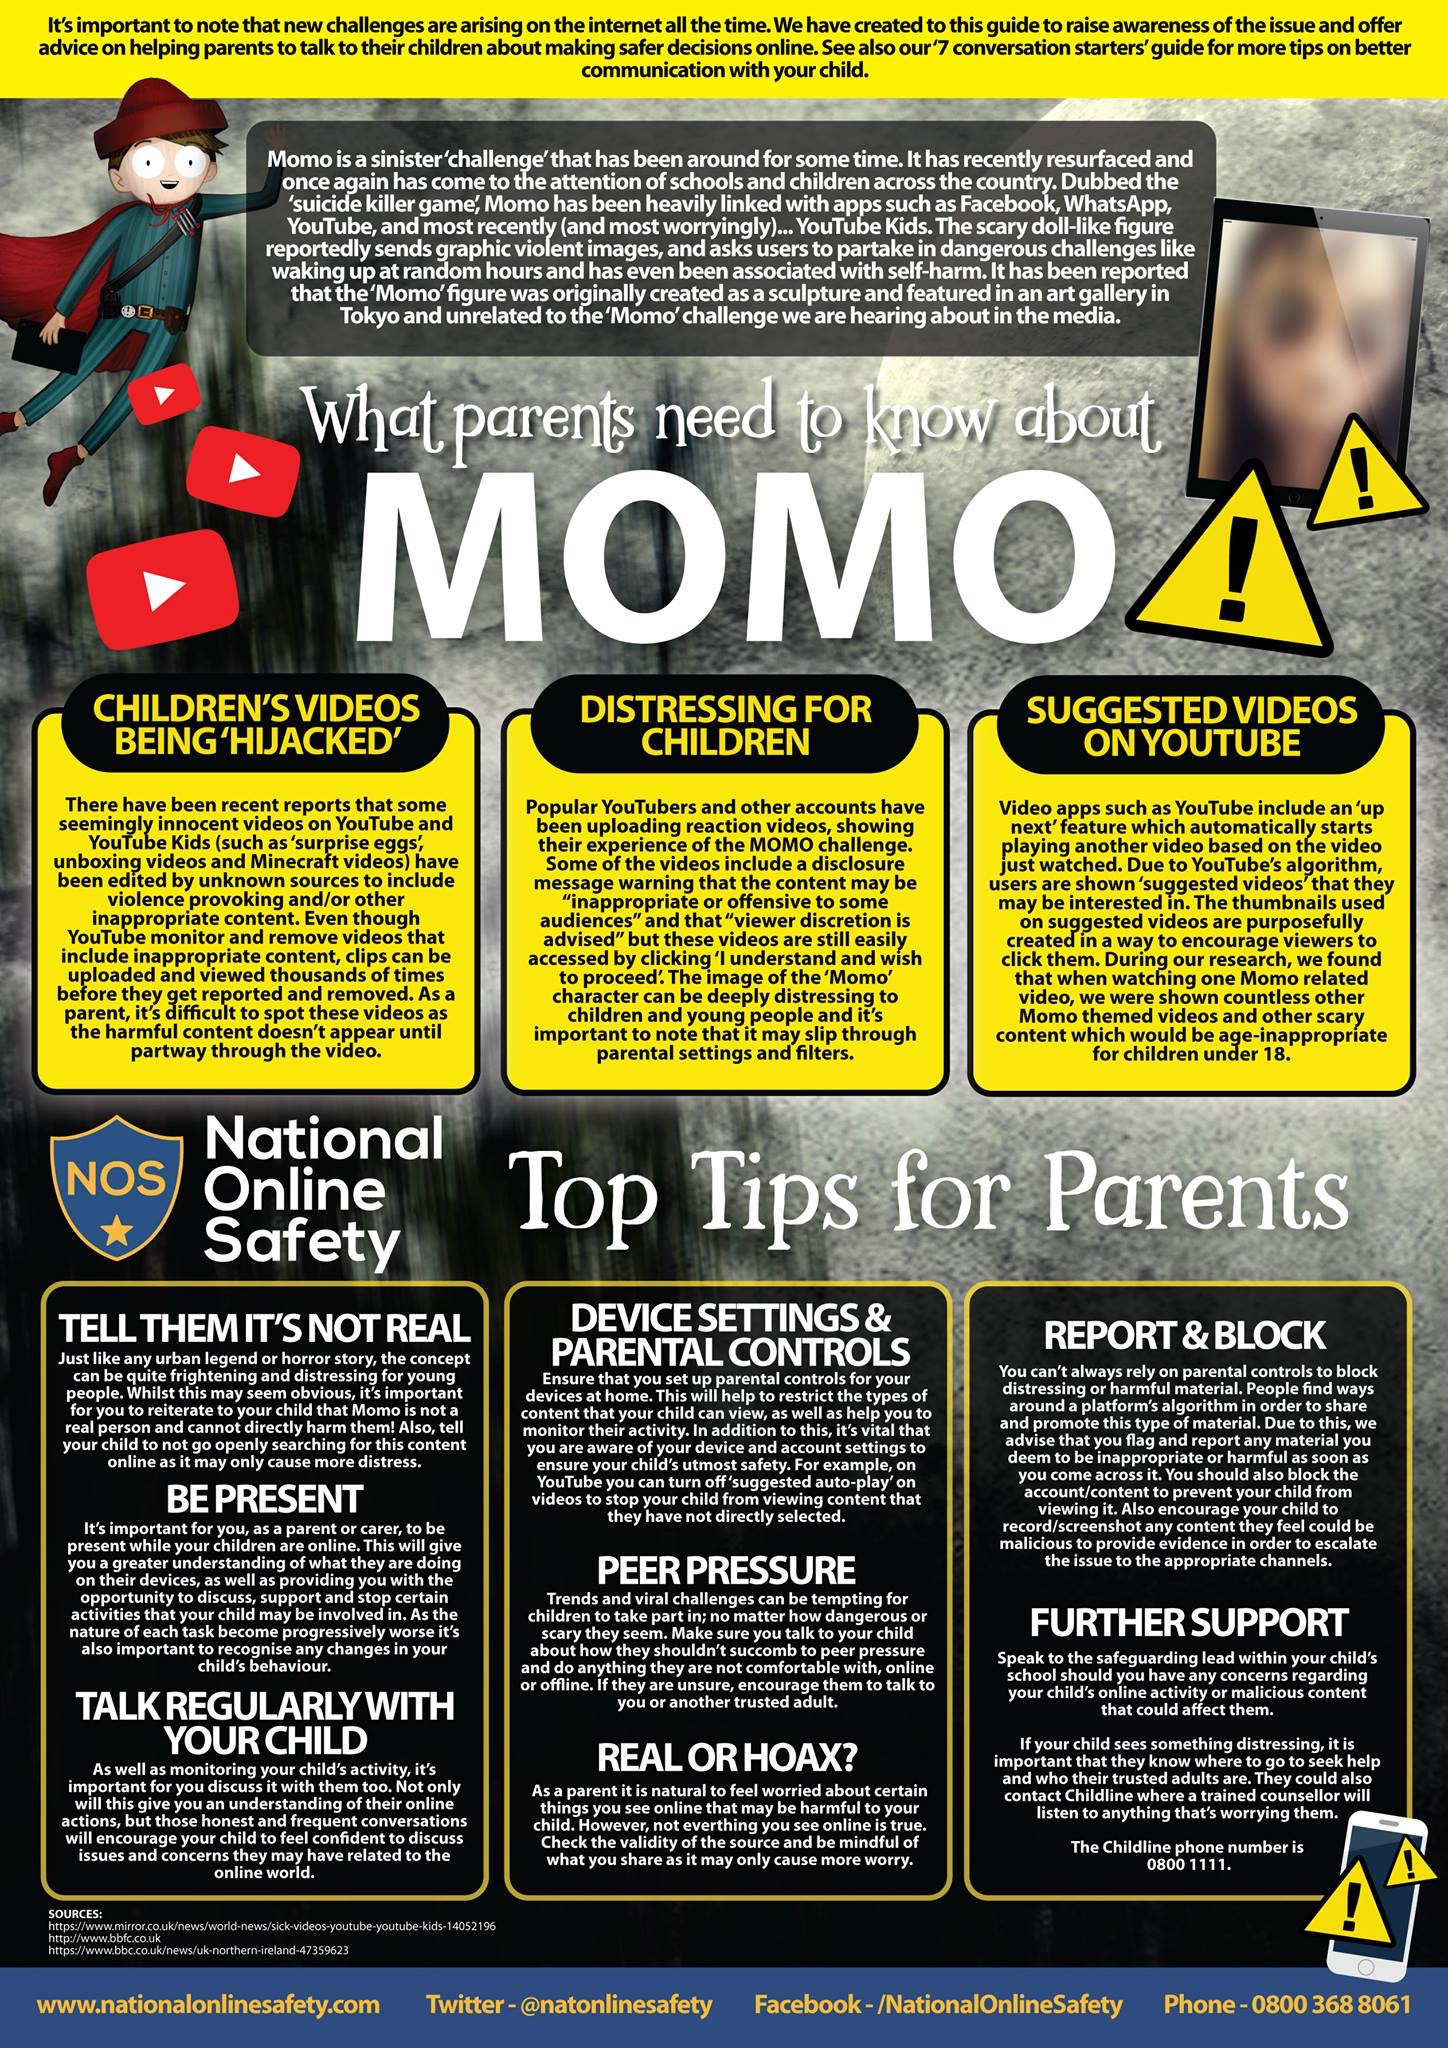 MOMO-Online-Safety-Guide-for-Parents